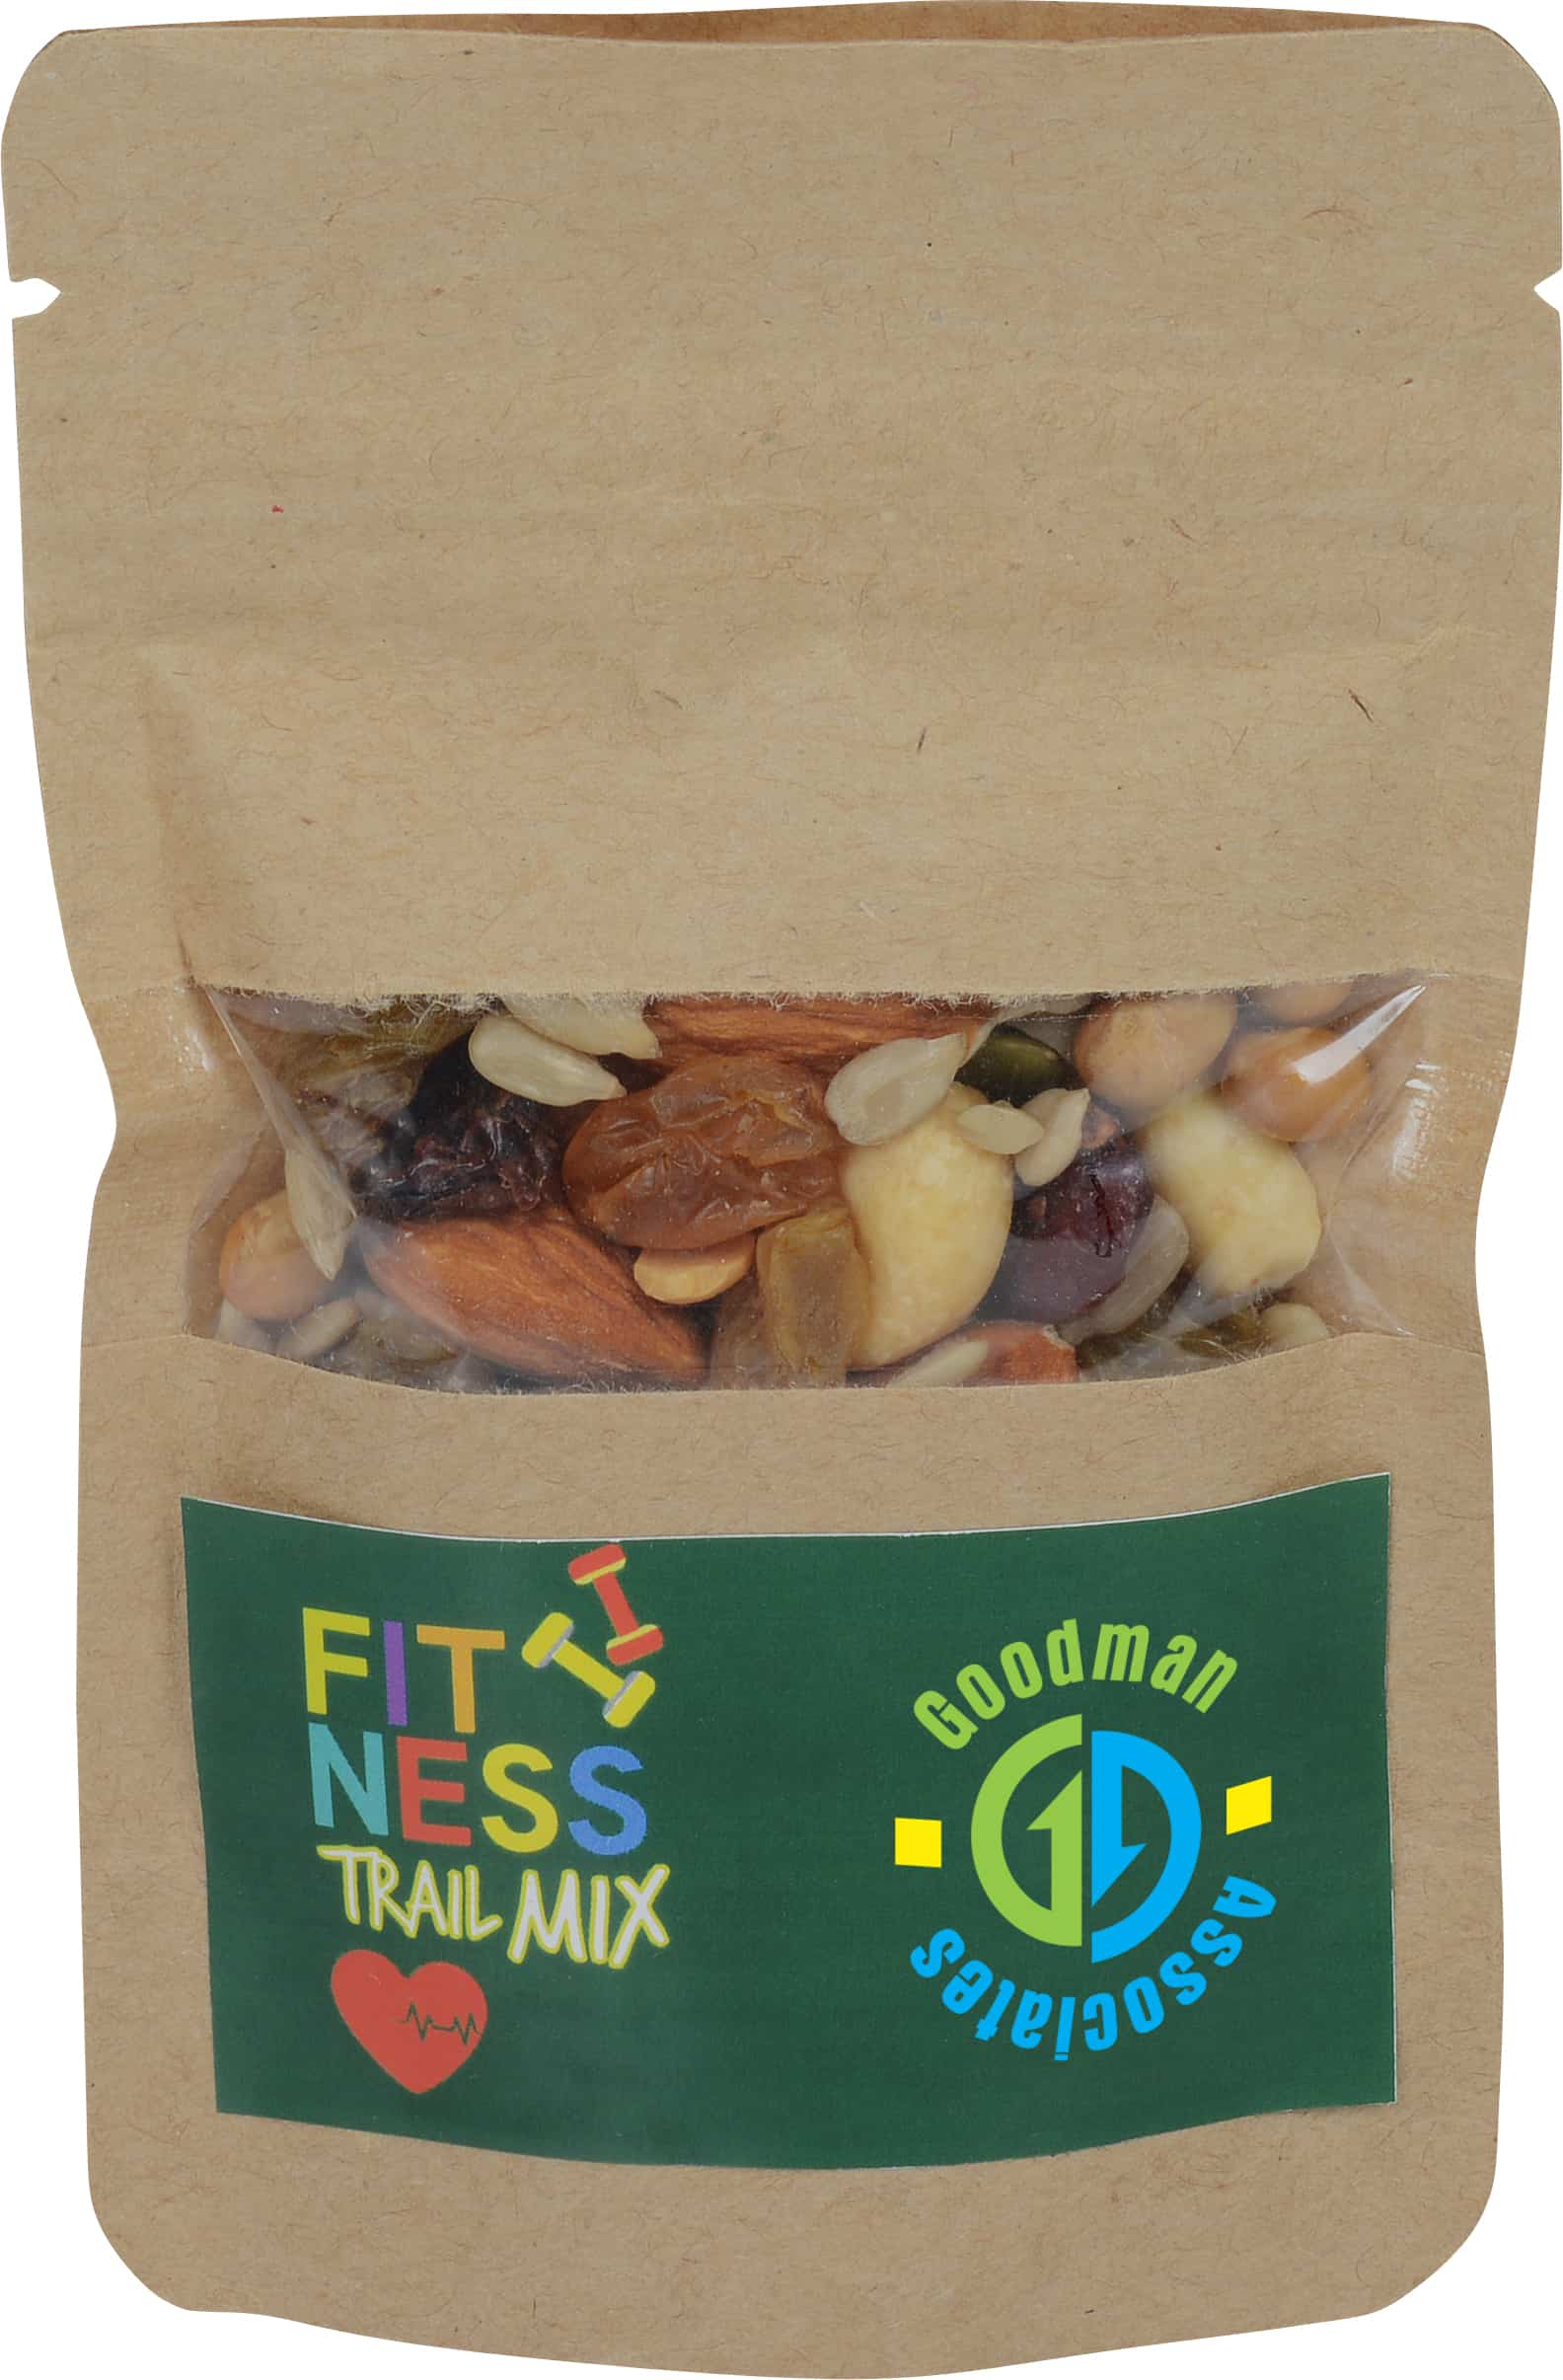 A brown bag of trail mix.